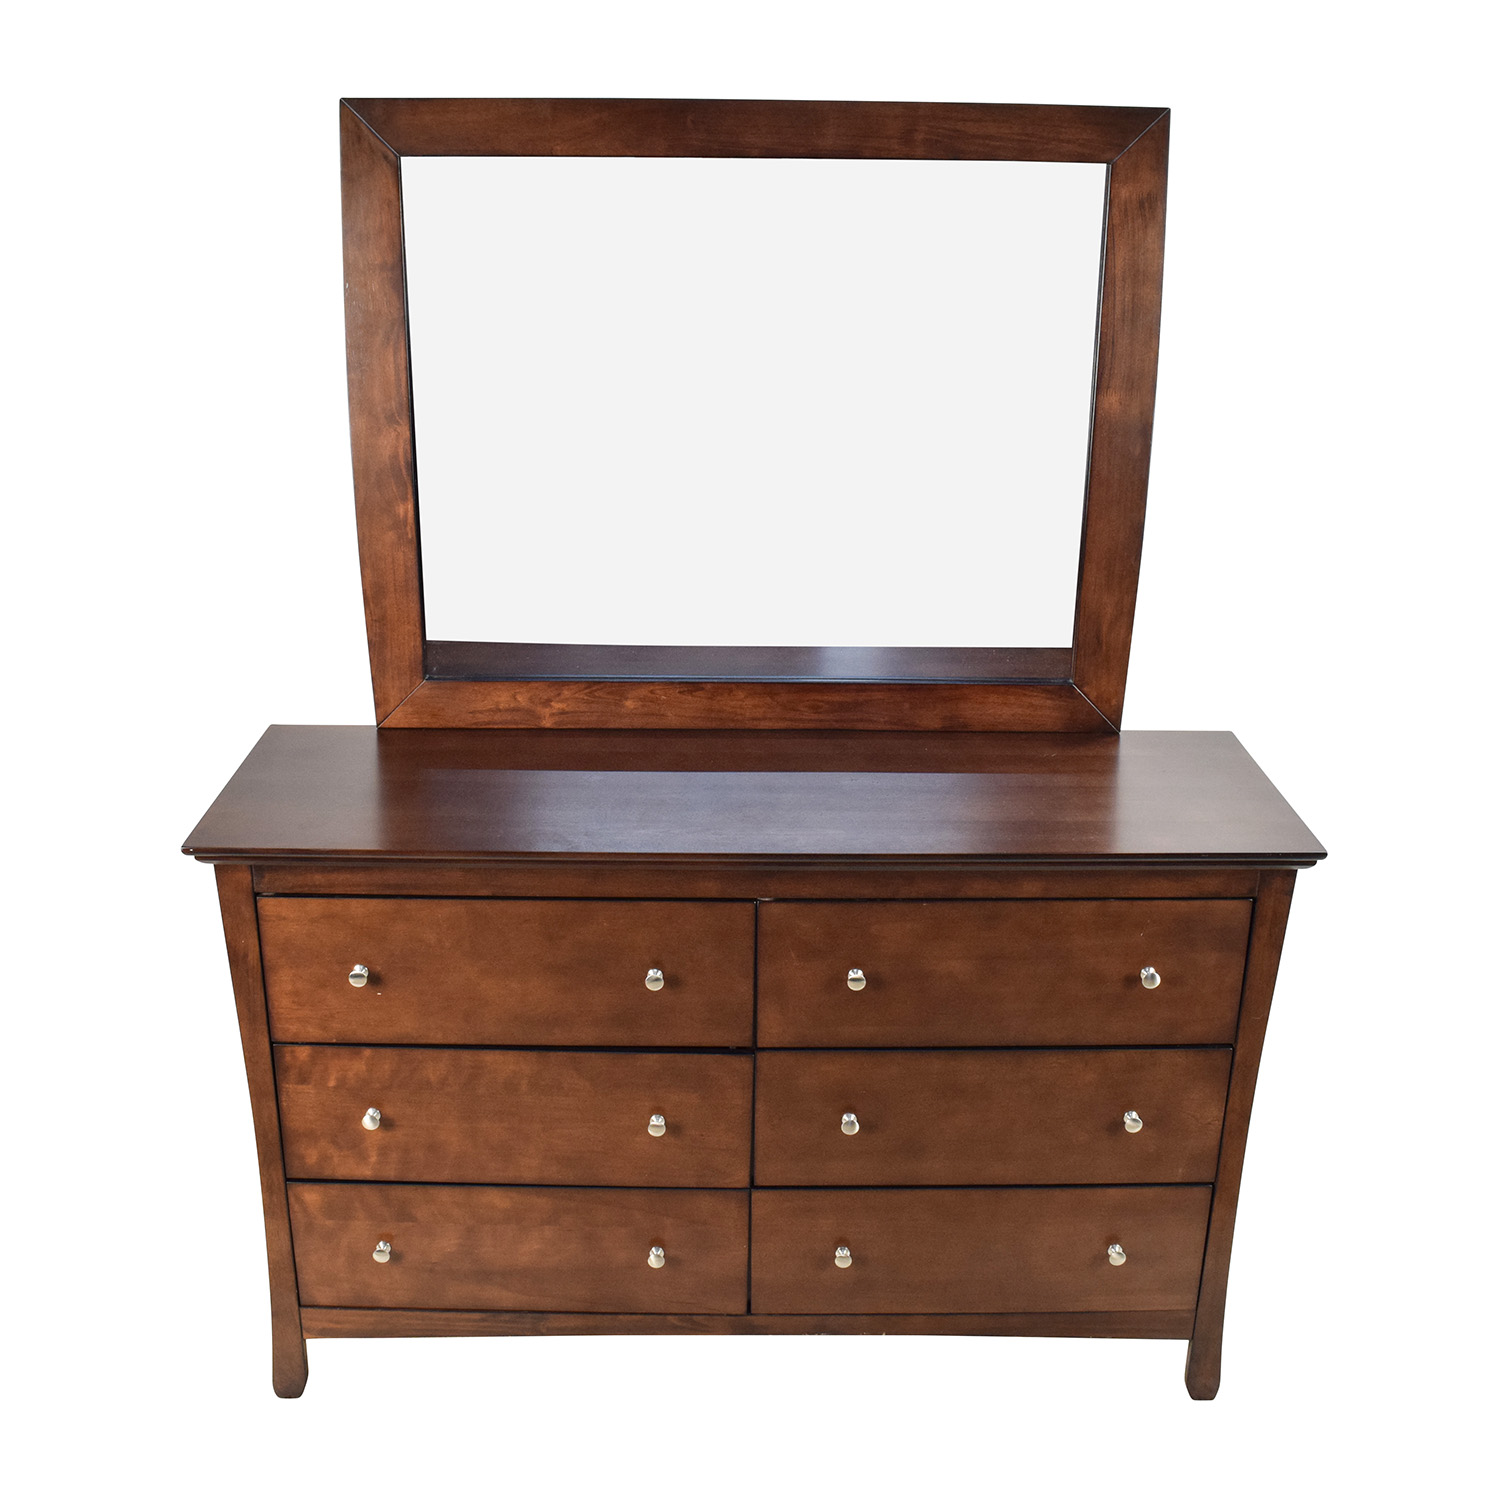 57 Off Large Brown Wood Dresser With Mirror Storage